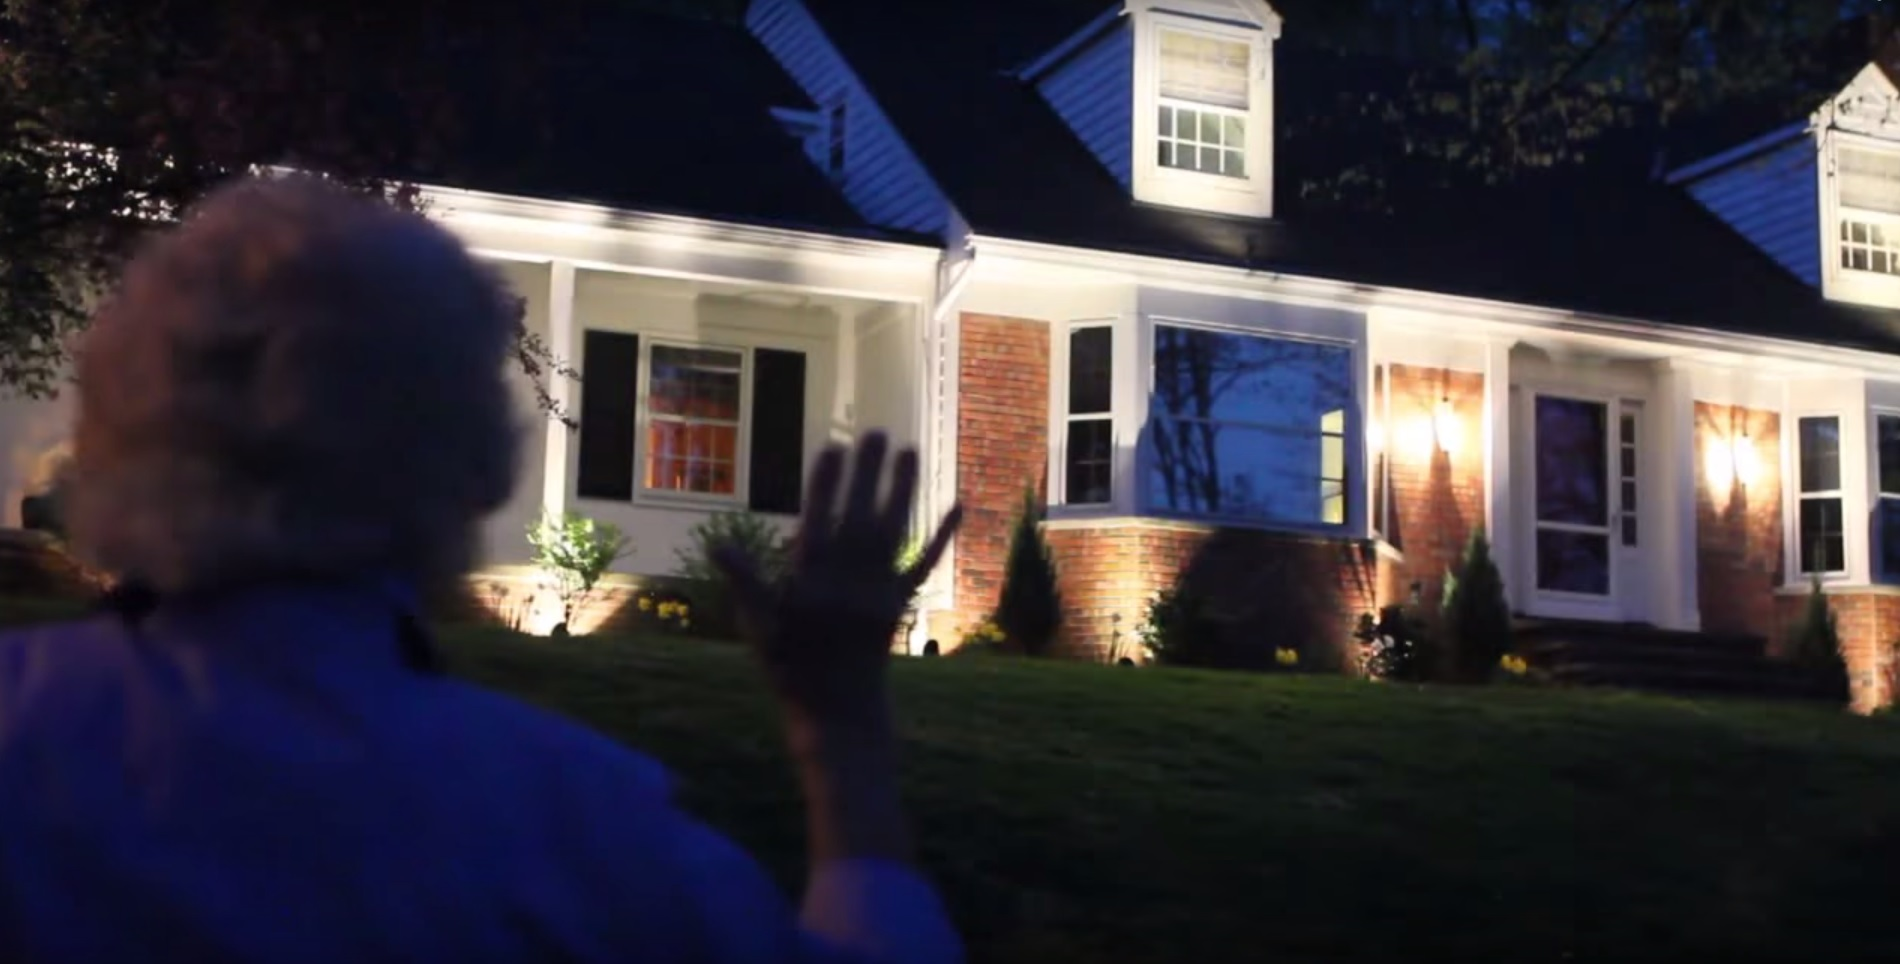 Northern Ohio Outdoor Lighting Nighttime Demonstration Thumbnail